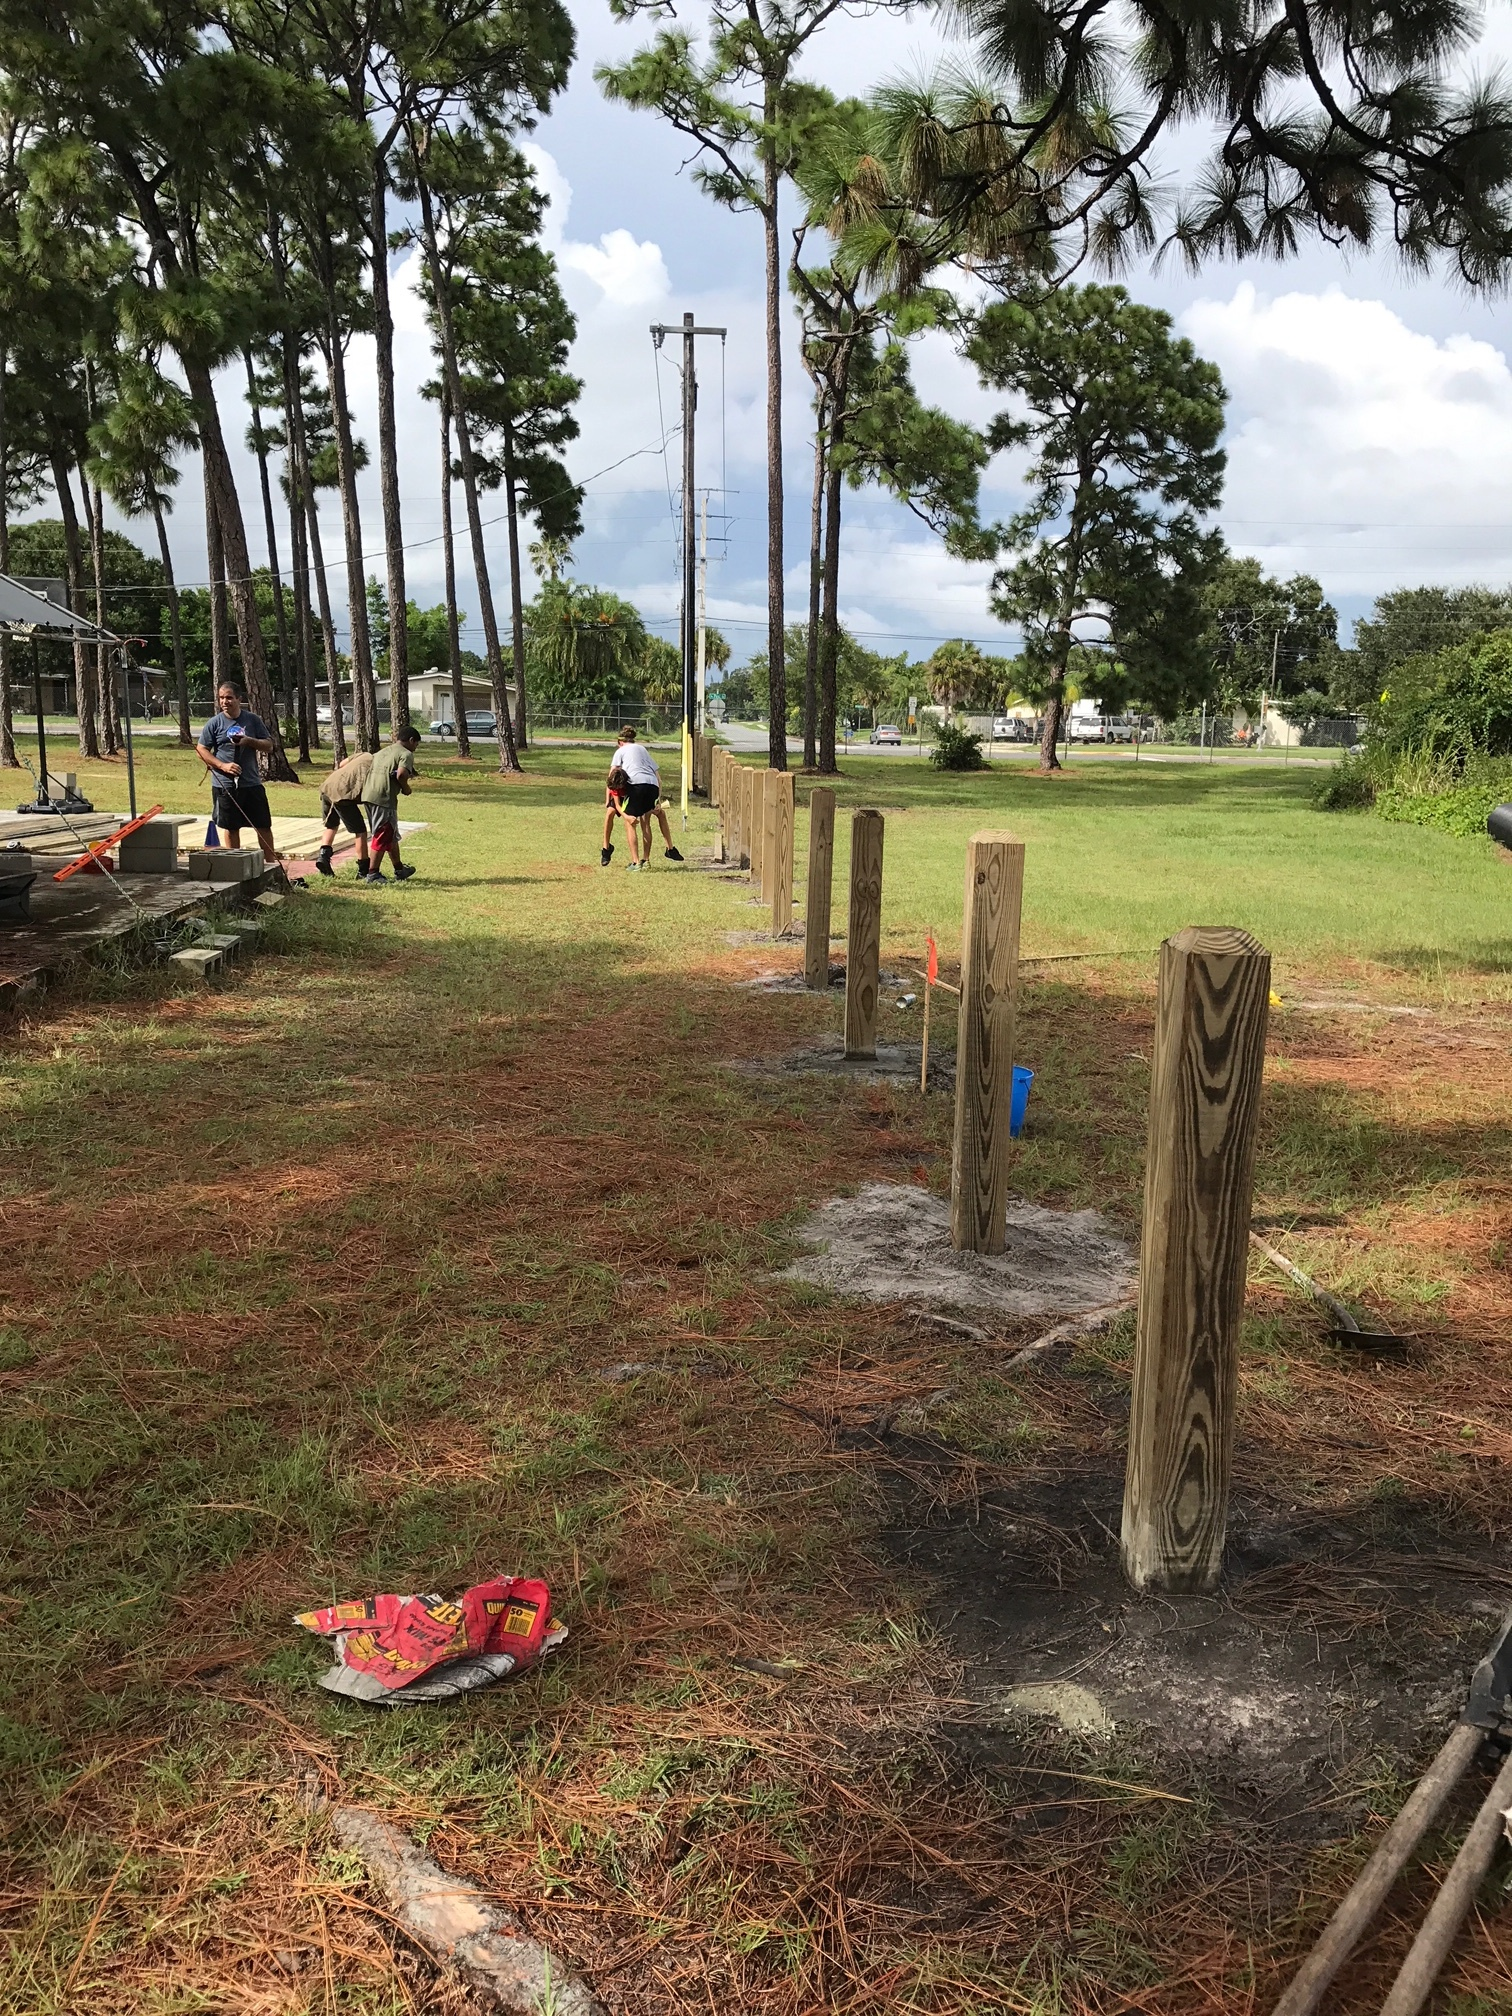 Posts were cemented in for stability (it already made it through Irma).   The fence-line was canted up and down to match the hills and valleys as it moved along.